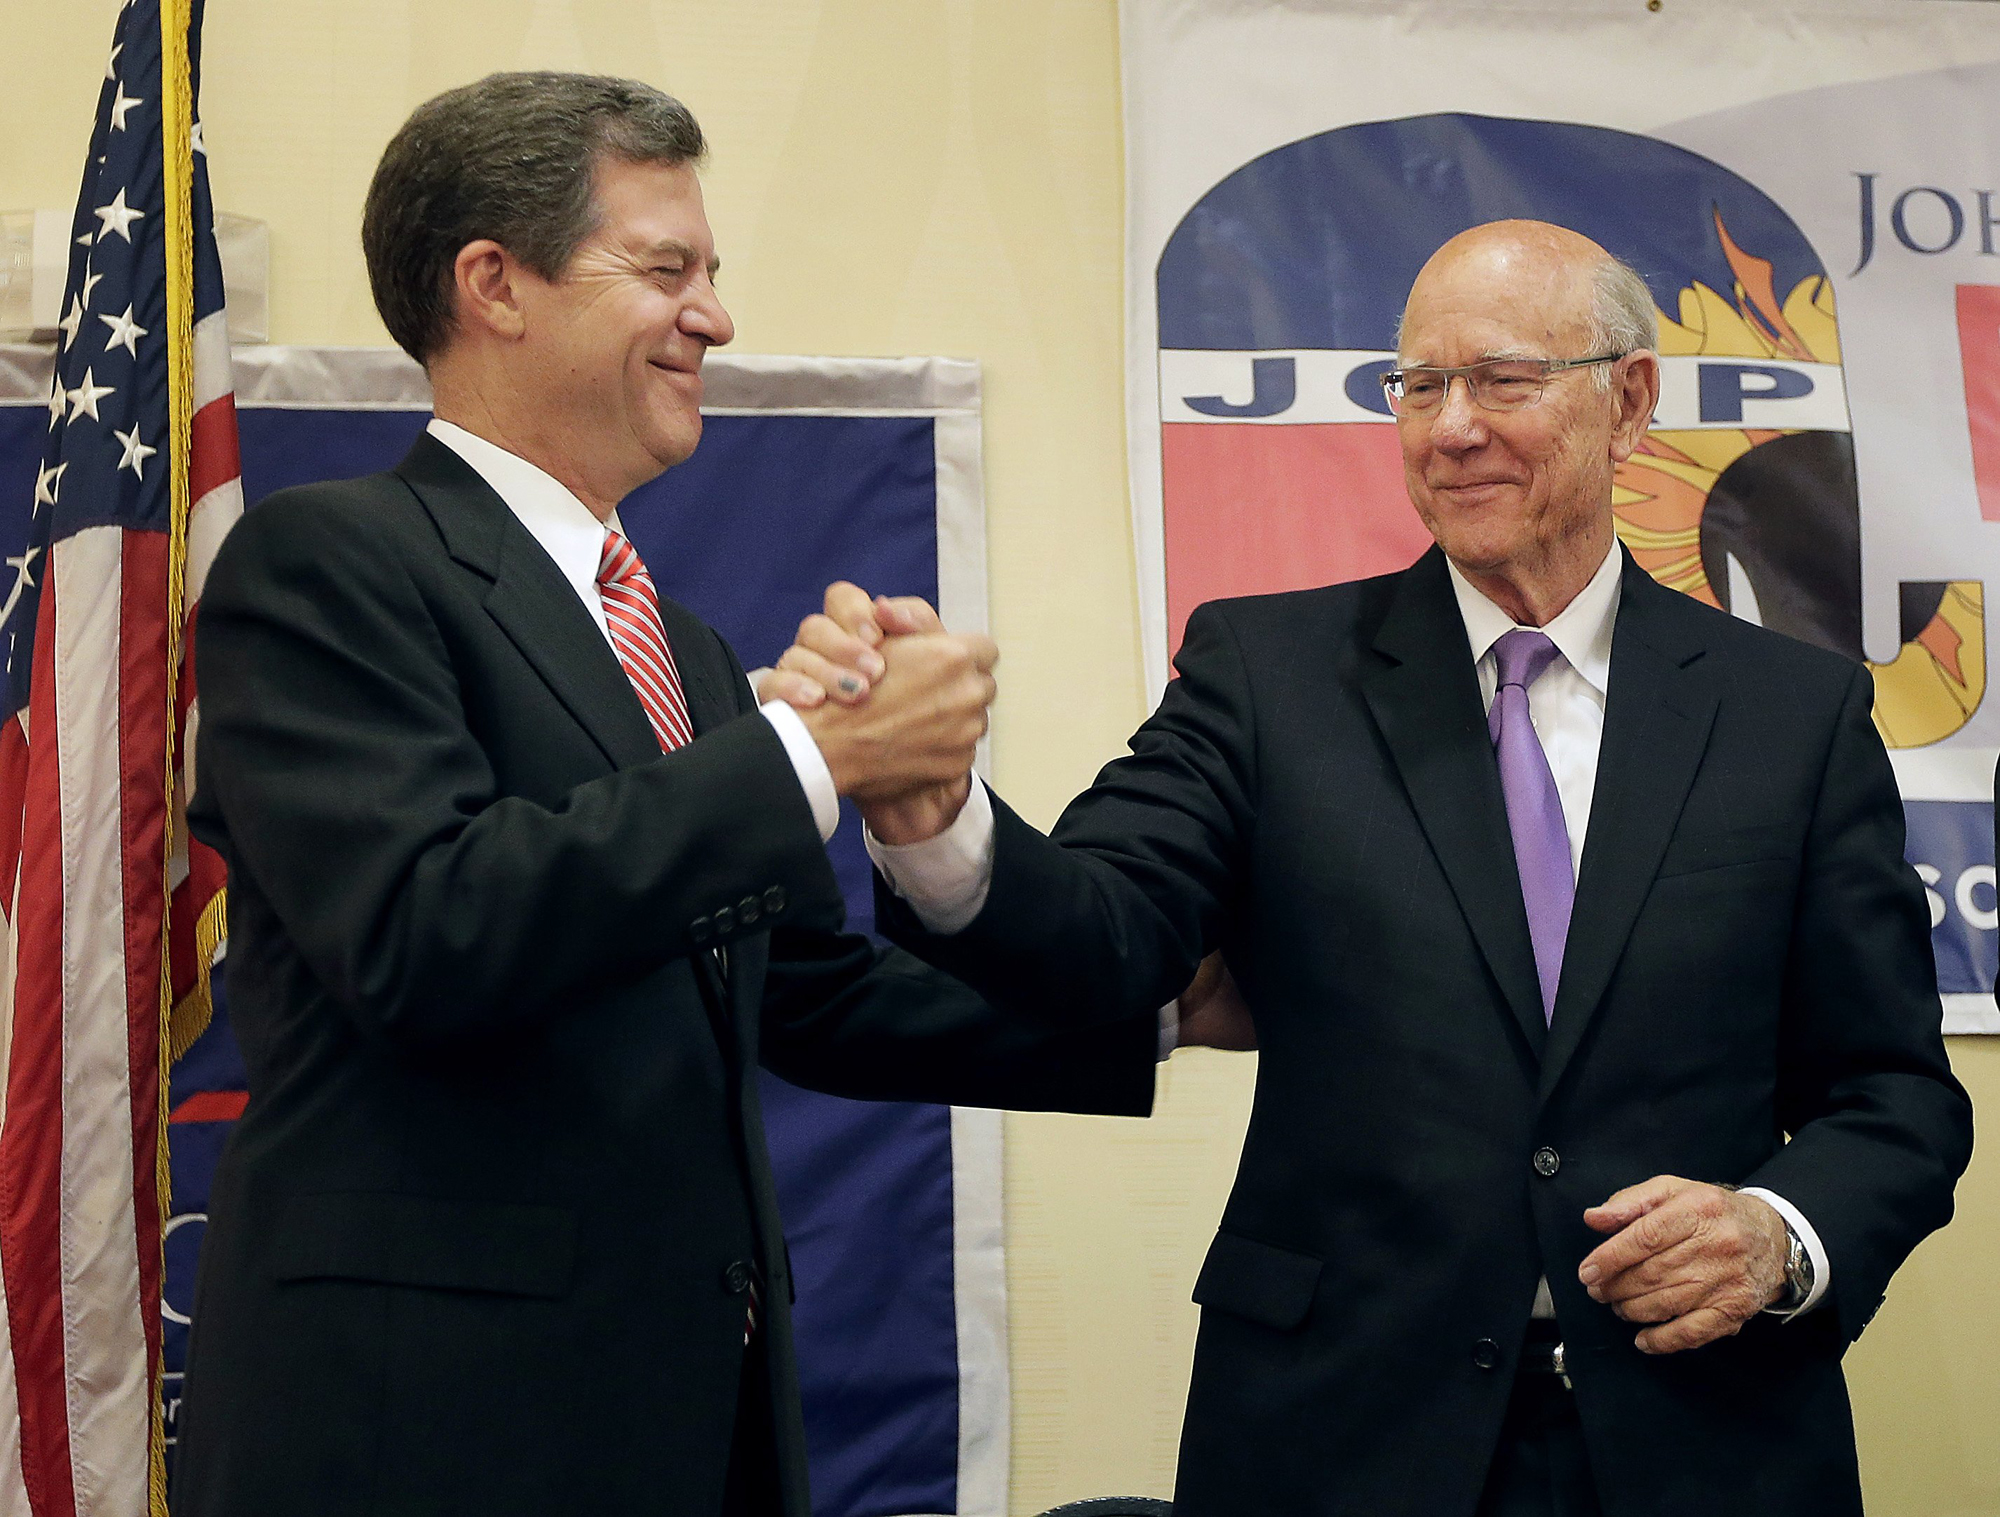 Kansas Gov. Sam Brownback, left, and U.S. Sen. Pat Roberts greet each other at Johnson County Republican's election watch party, Aug. 5, 2014, in Overland Park, Kan.